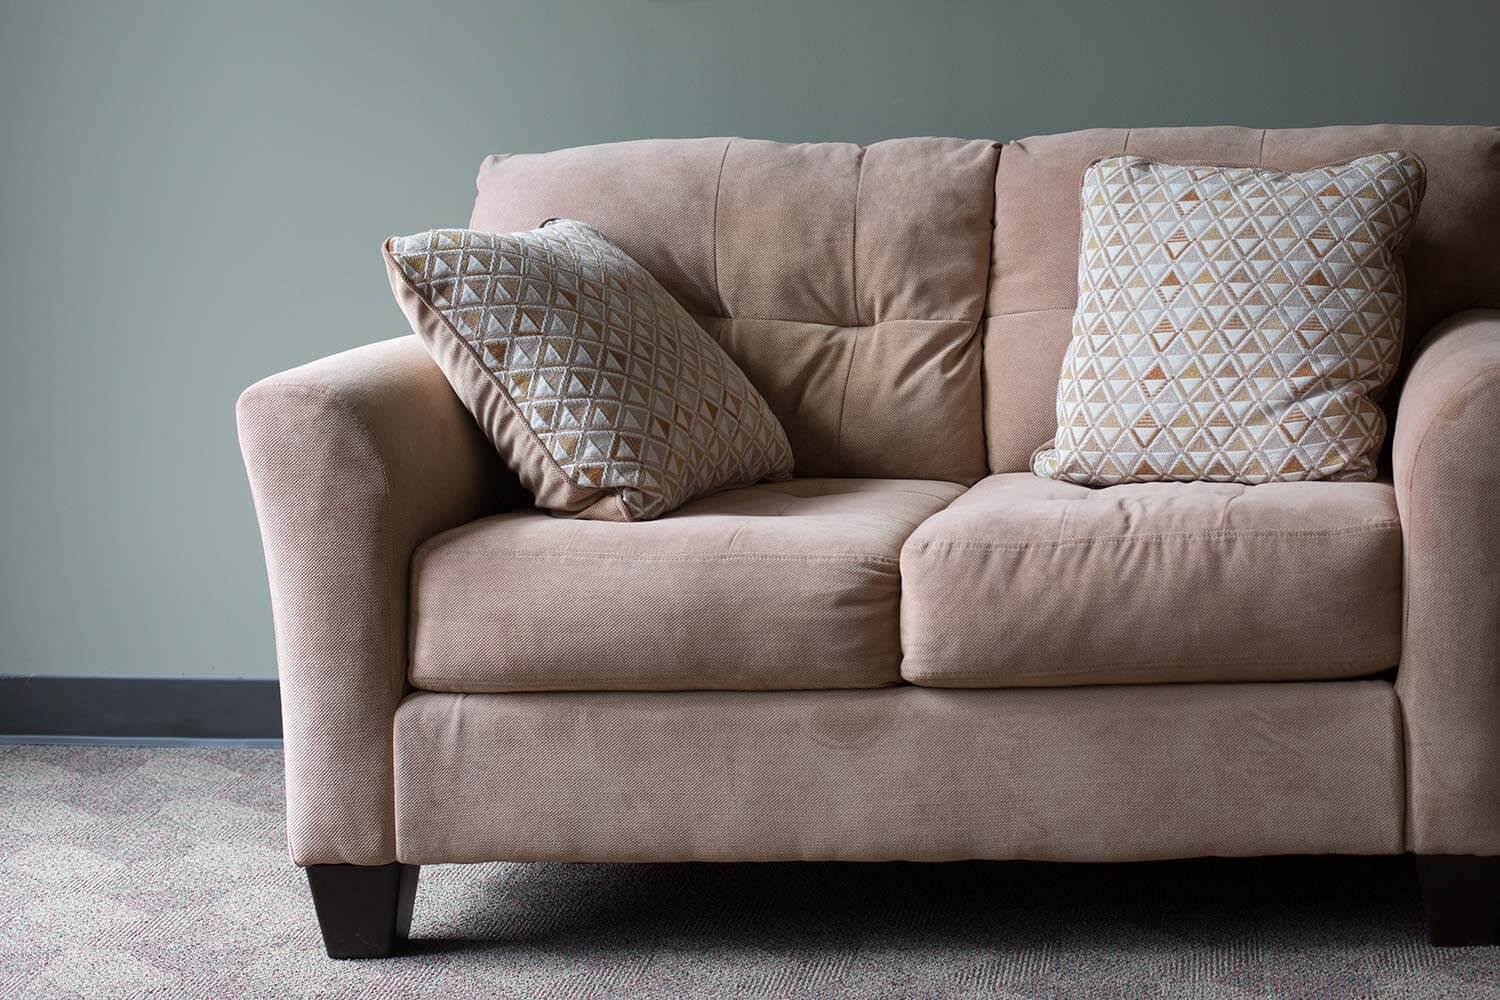 An upholstered couch that was cleaned by a Chem-Dry upholstery cleaner in yelm.